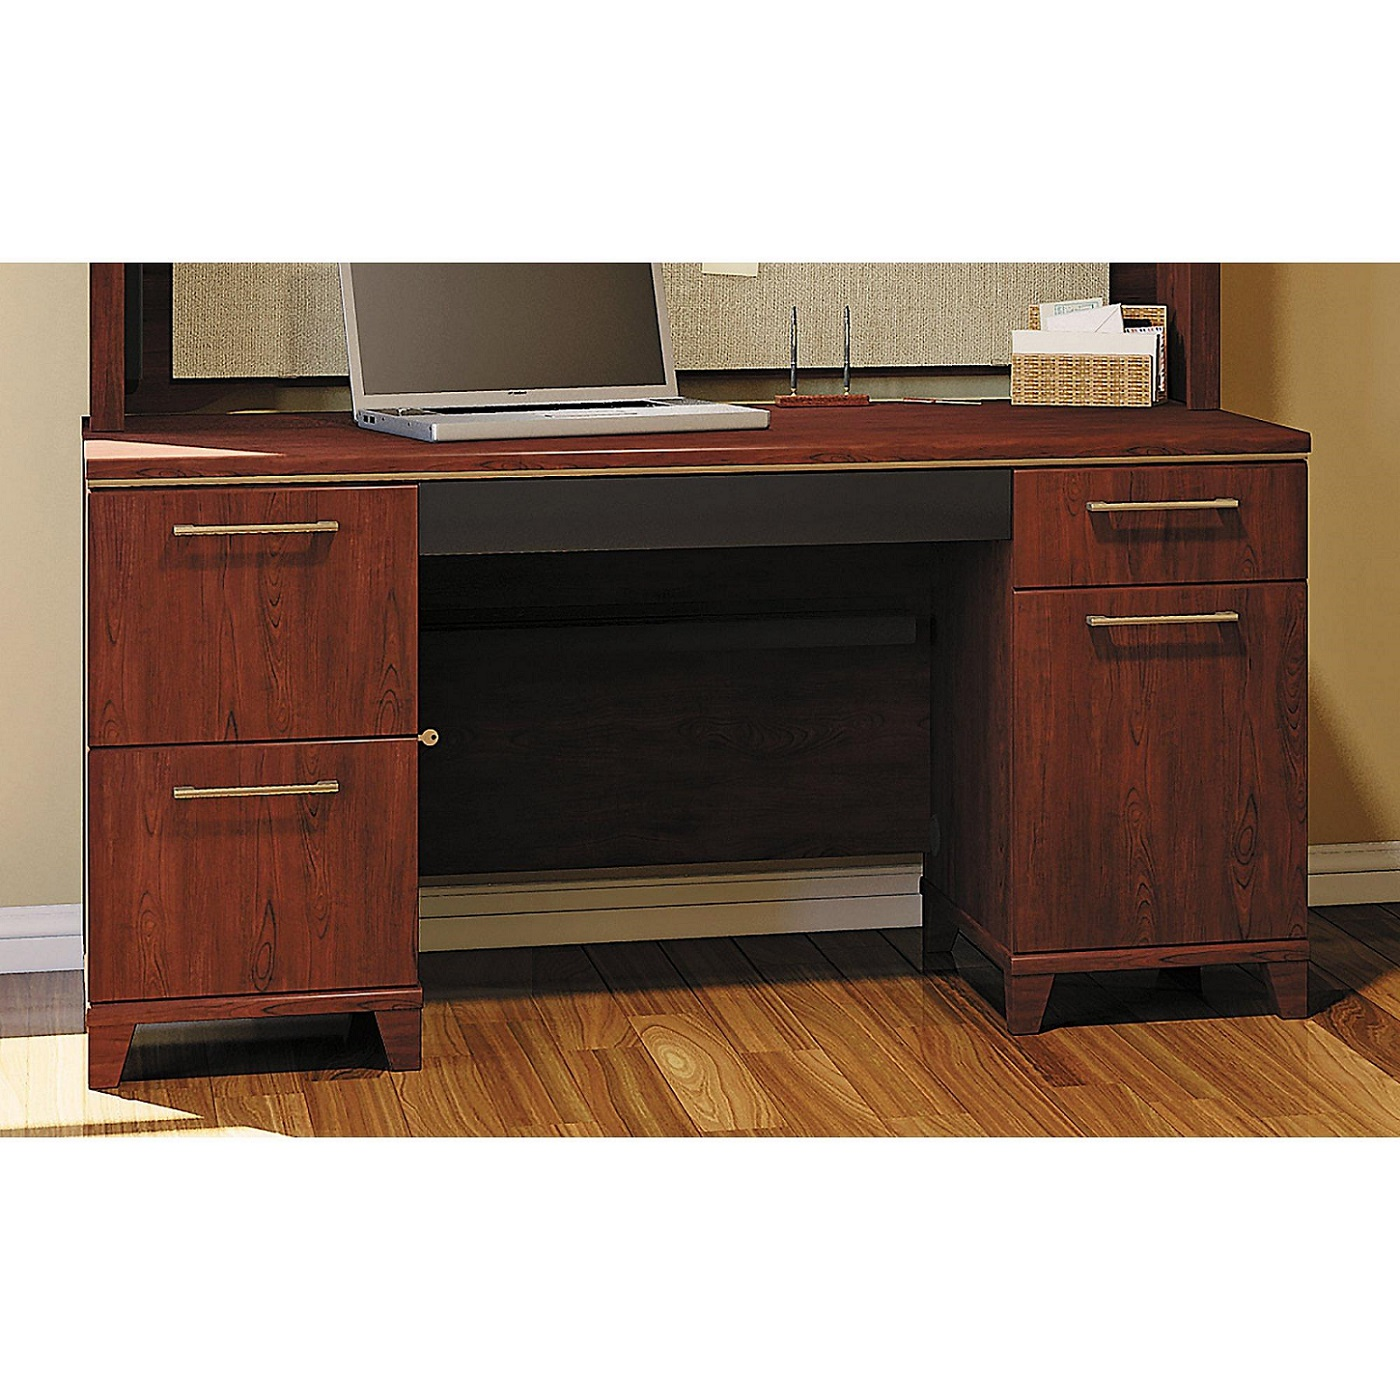 BUSH OFFICE DESKS. IN STOCK SHIPS IN 3-5 BIZ DAYS